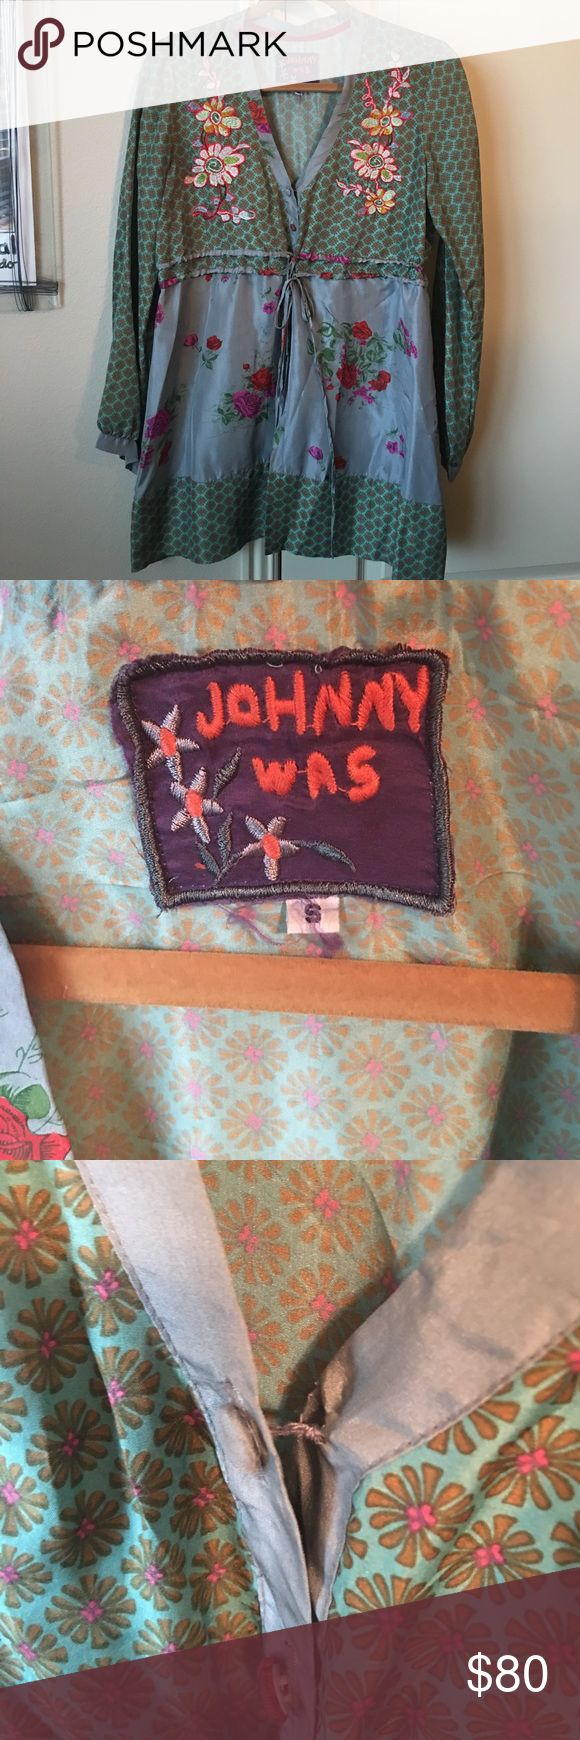 Johnny Was 100% silk top size small Johnny Was 100% silk top size small. The top button is a little loose. Beautiful embroidery on the front. Buttons down the front, and ties around the waist. No holds or trades. ❤❤❤ Johnny Was Tops Blouses